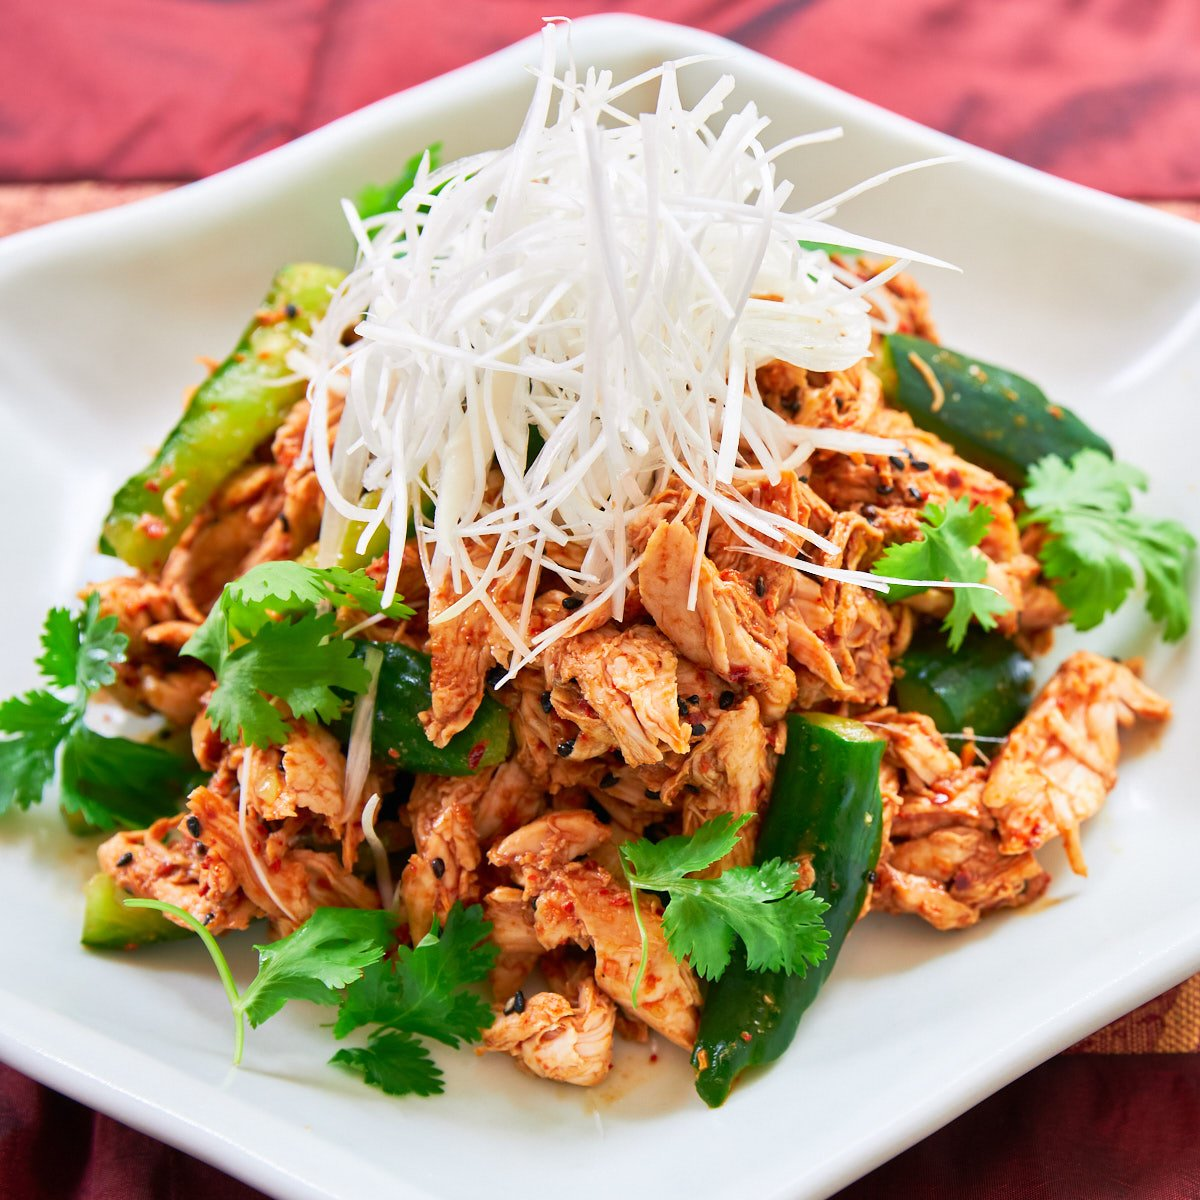 This spicy chicken salad is loaded with juicy shredded chicken and crunchy cucumbers dressed with a sesame chili sauce. Get the details in this Bang Bang Chicken recipe.